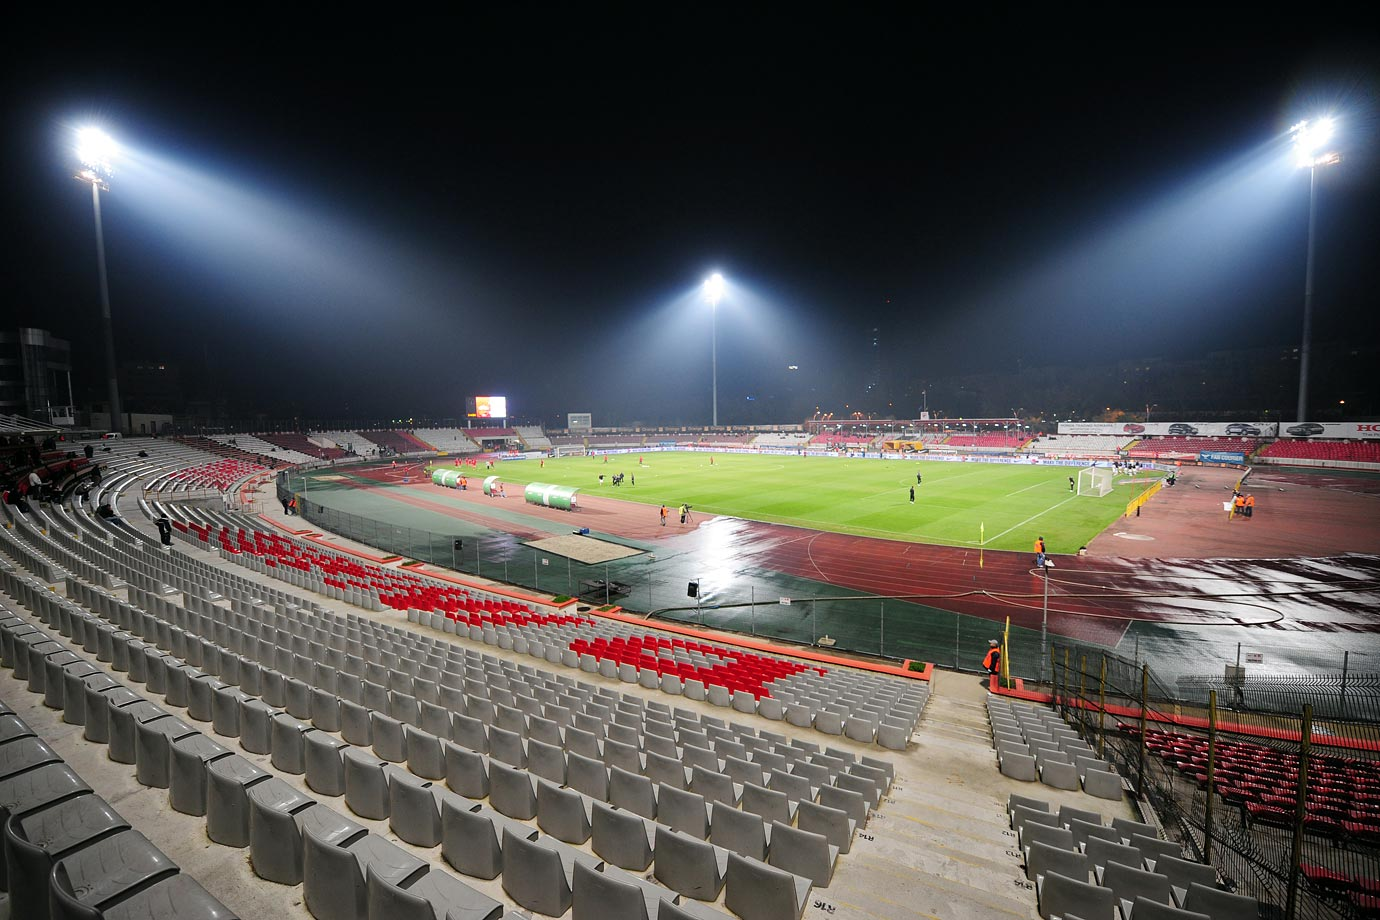 FC Dinamo Bucureşti had to play two home games in European competitions behind closed doors after their match against FC Slovan Liberec on Aug. 25, 2009 was abandoned in the 88th minute due to a pitch invasion by Dinamo fans.